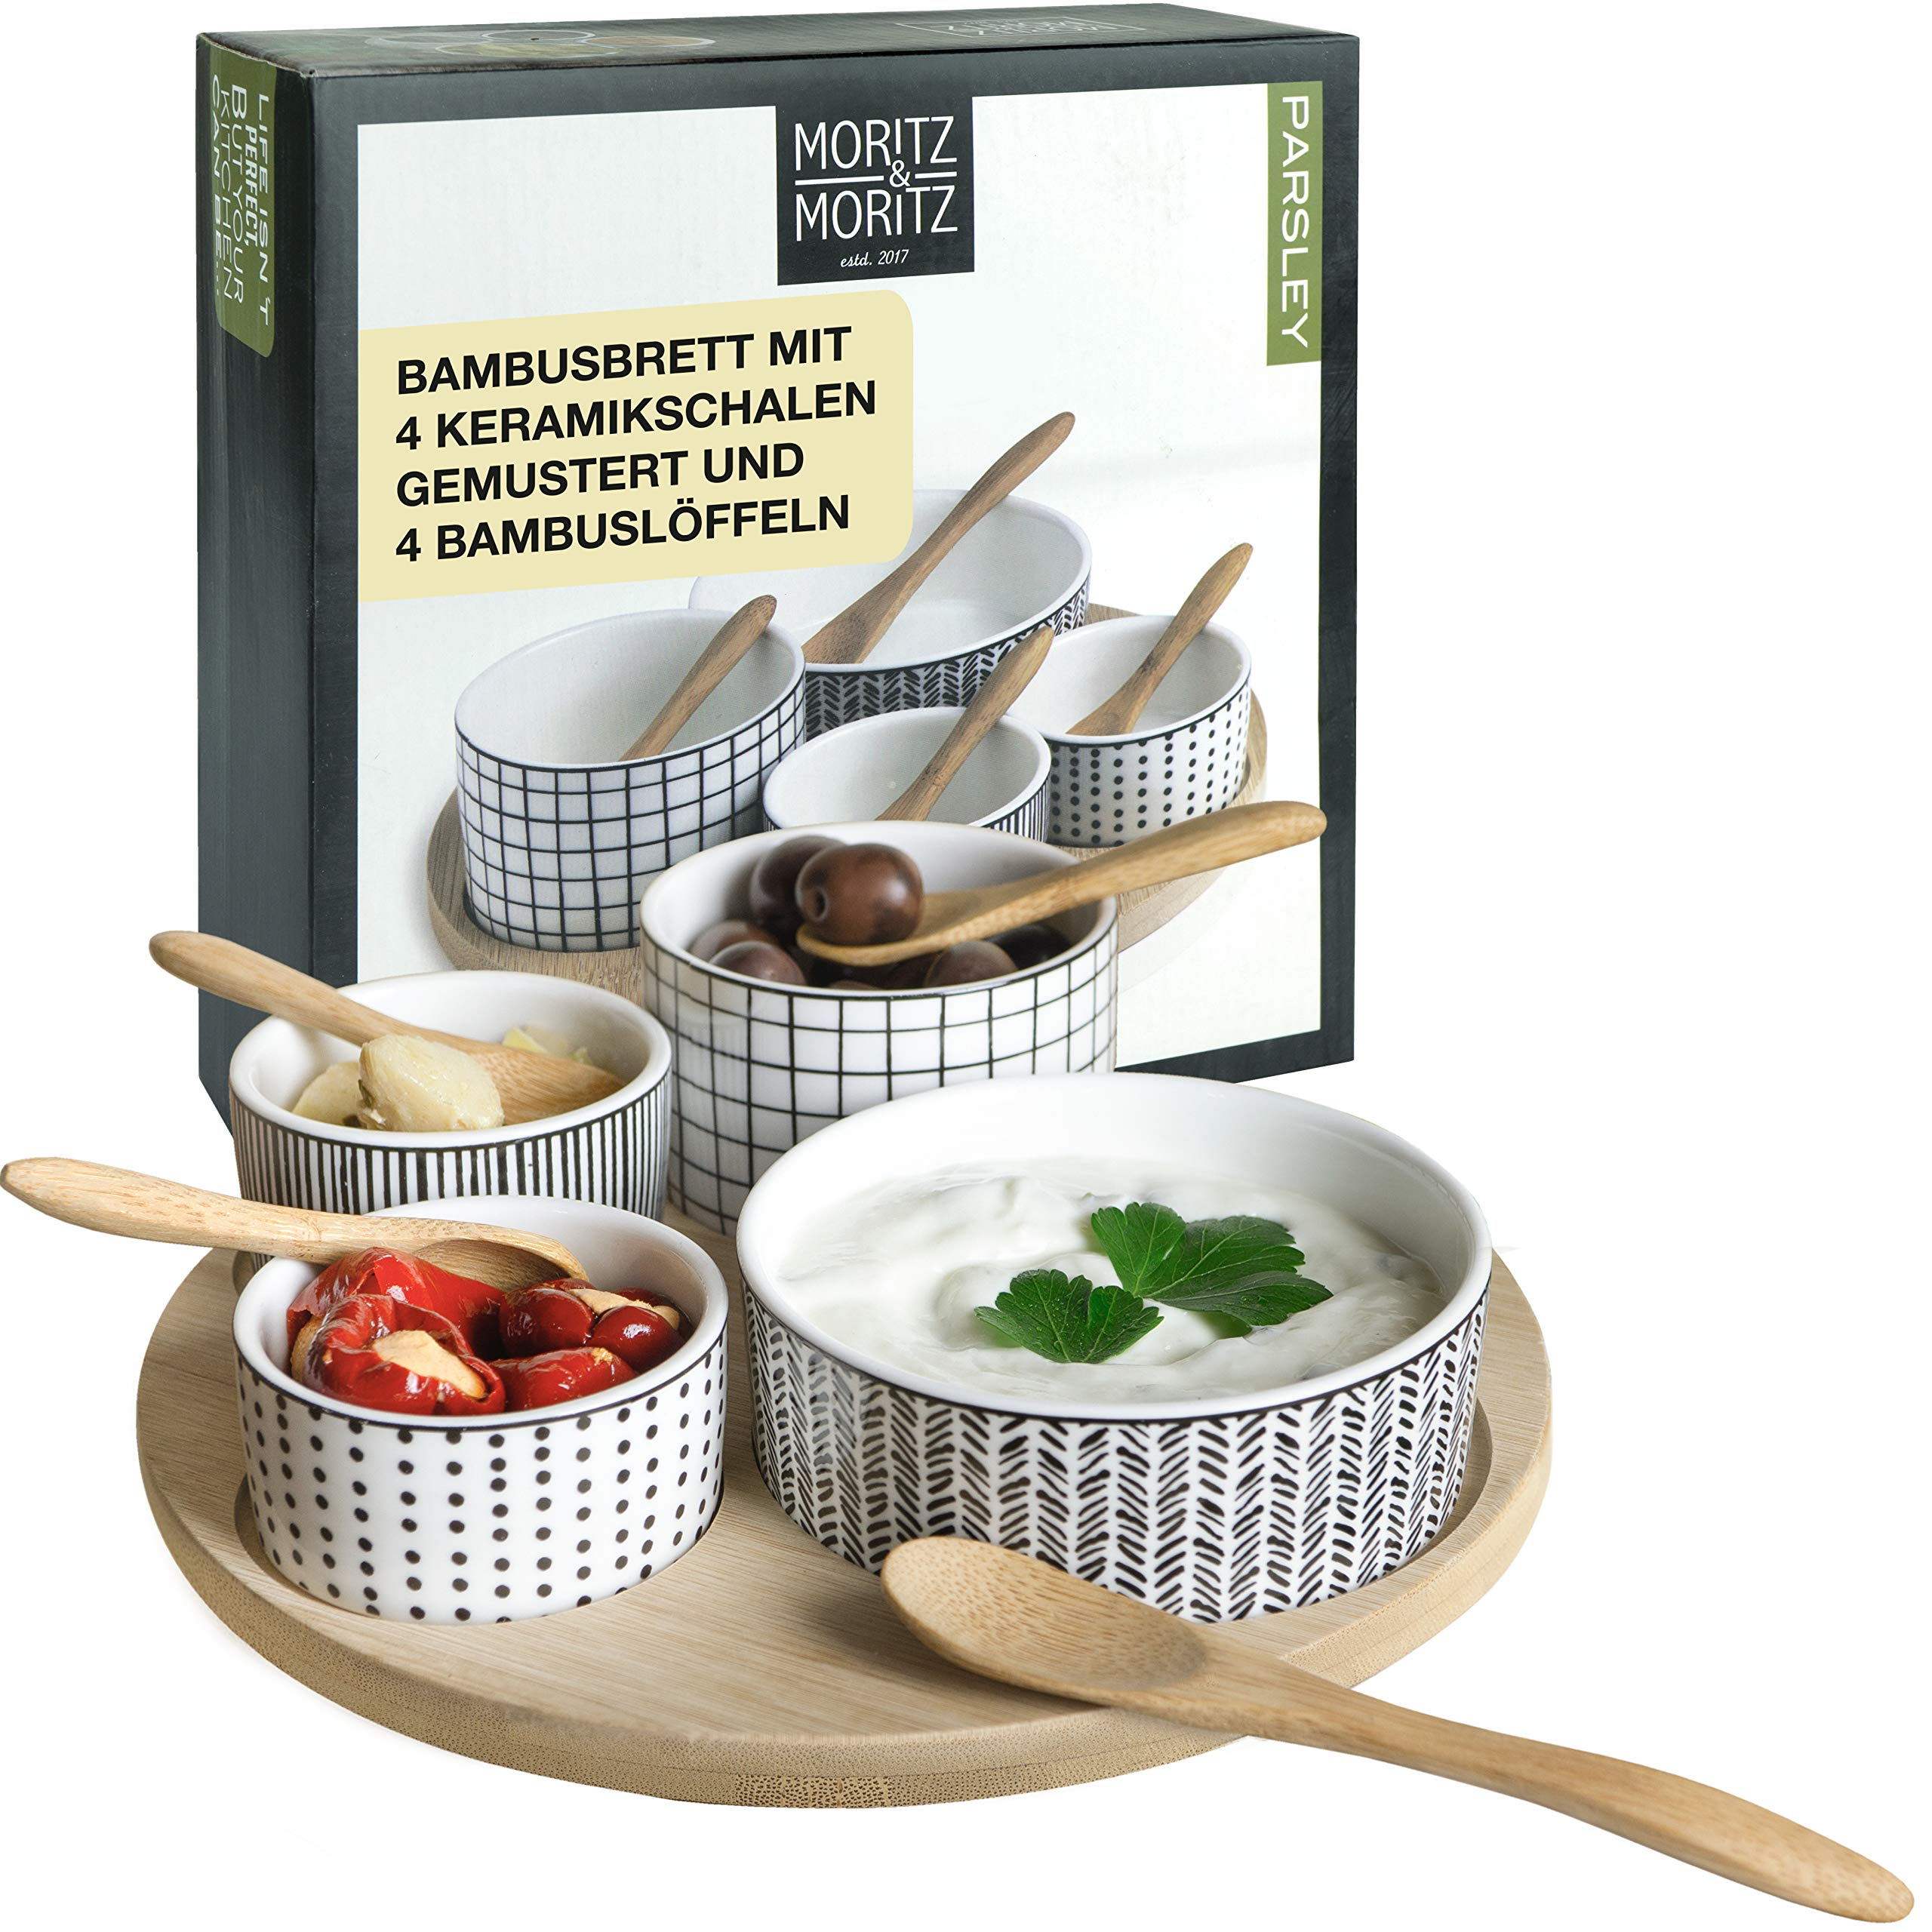 Moritz & Moritz Serving Platters Set - Bamboo Tray with White Ceramic Bowls and Spoons - for Dips Snacks and Starters